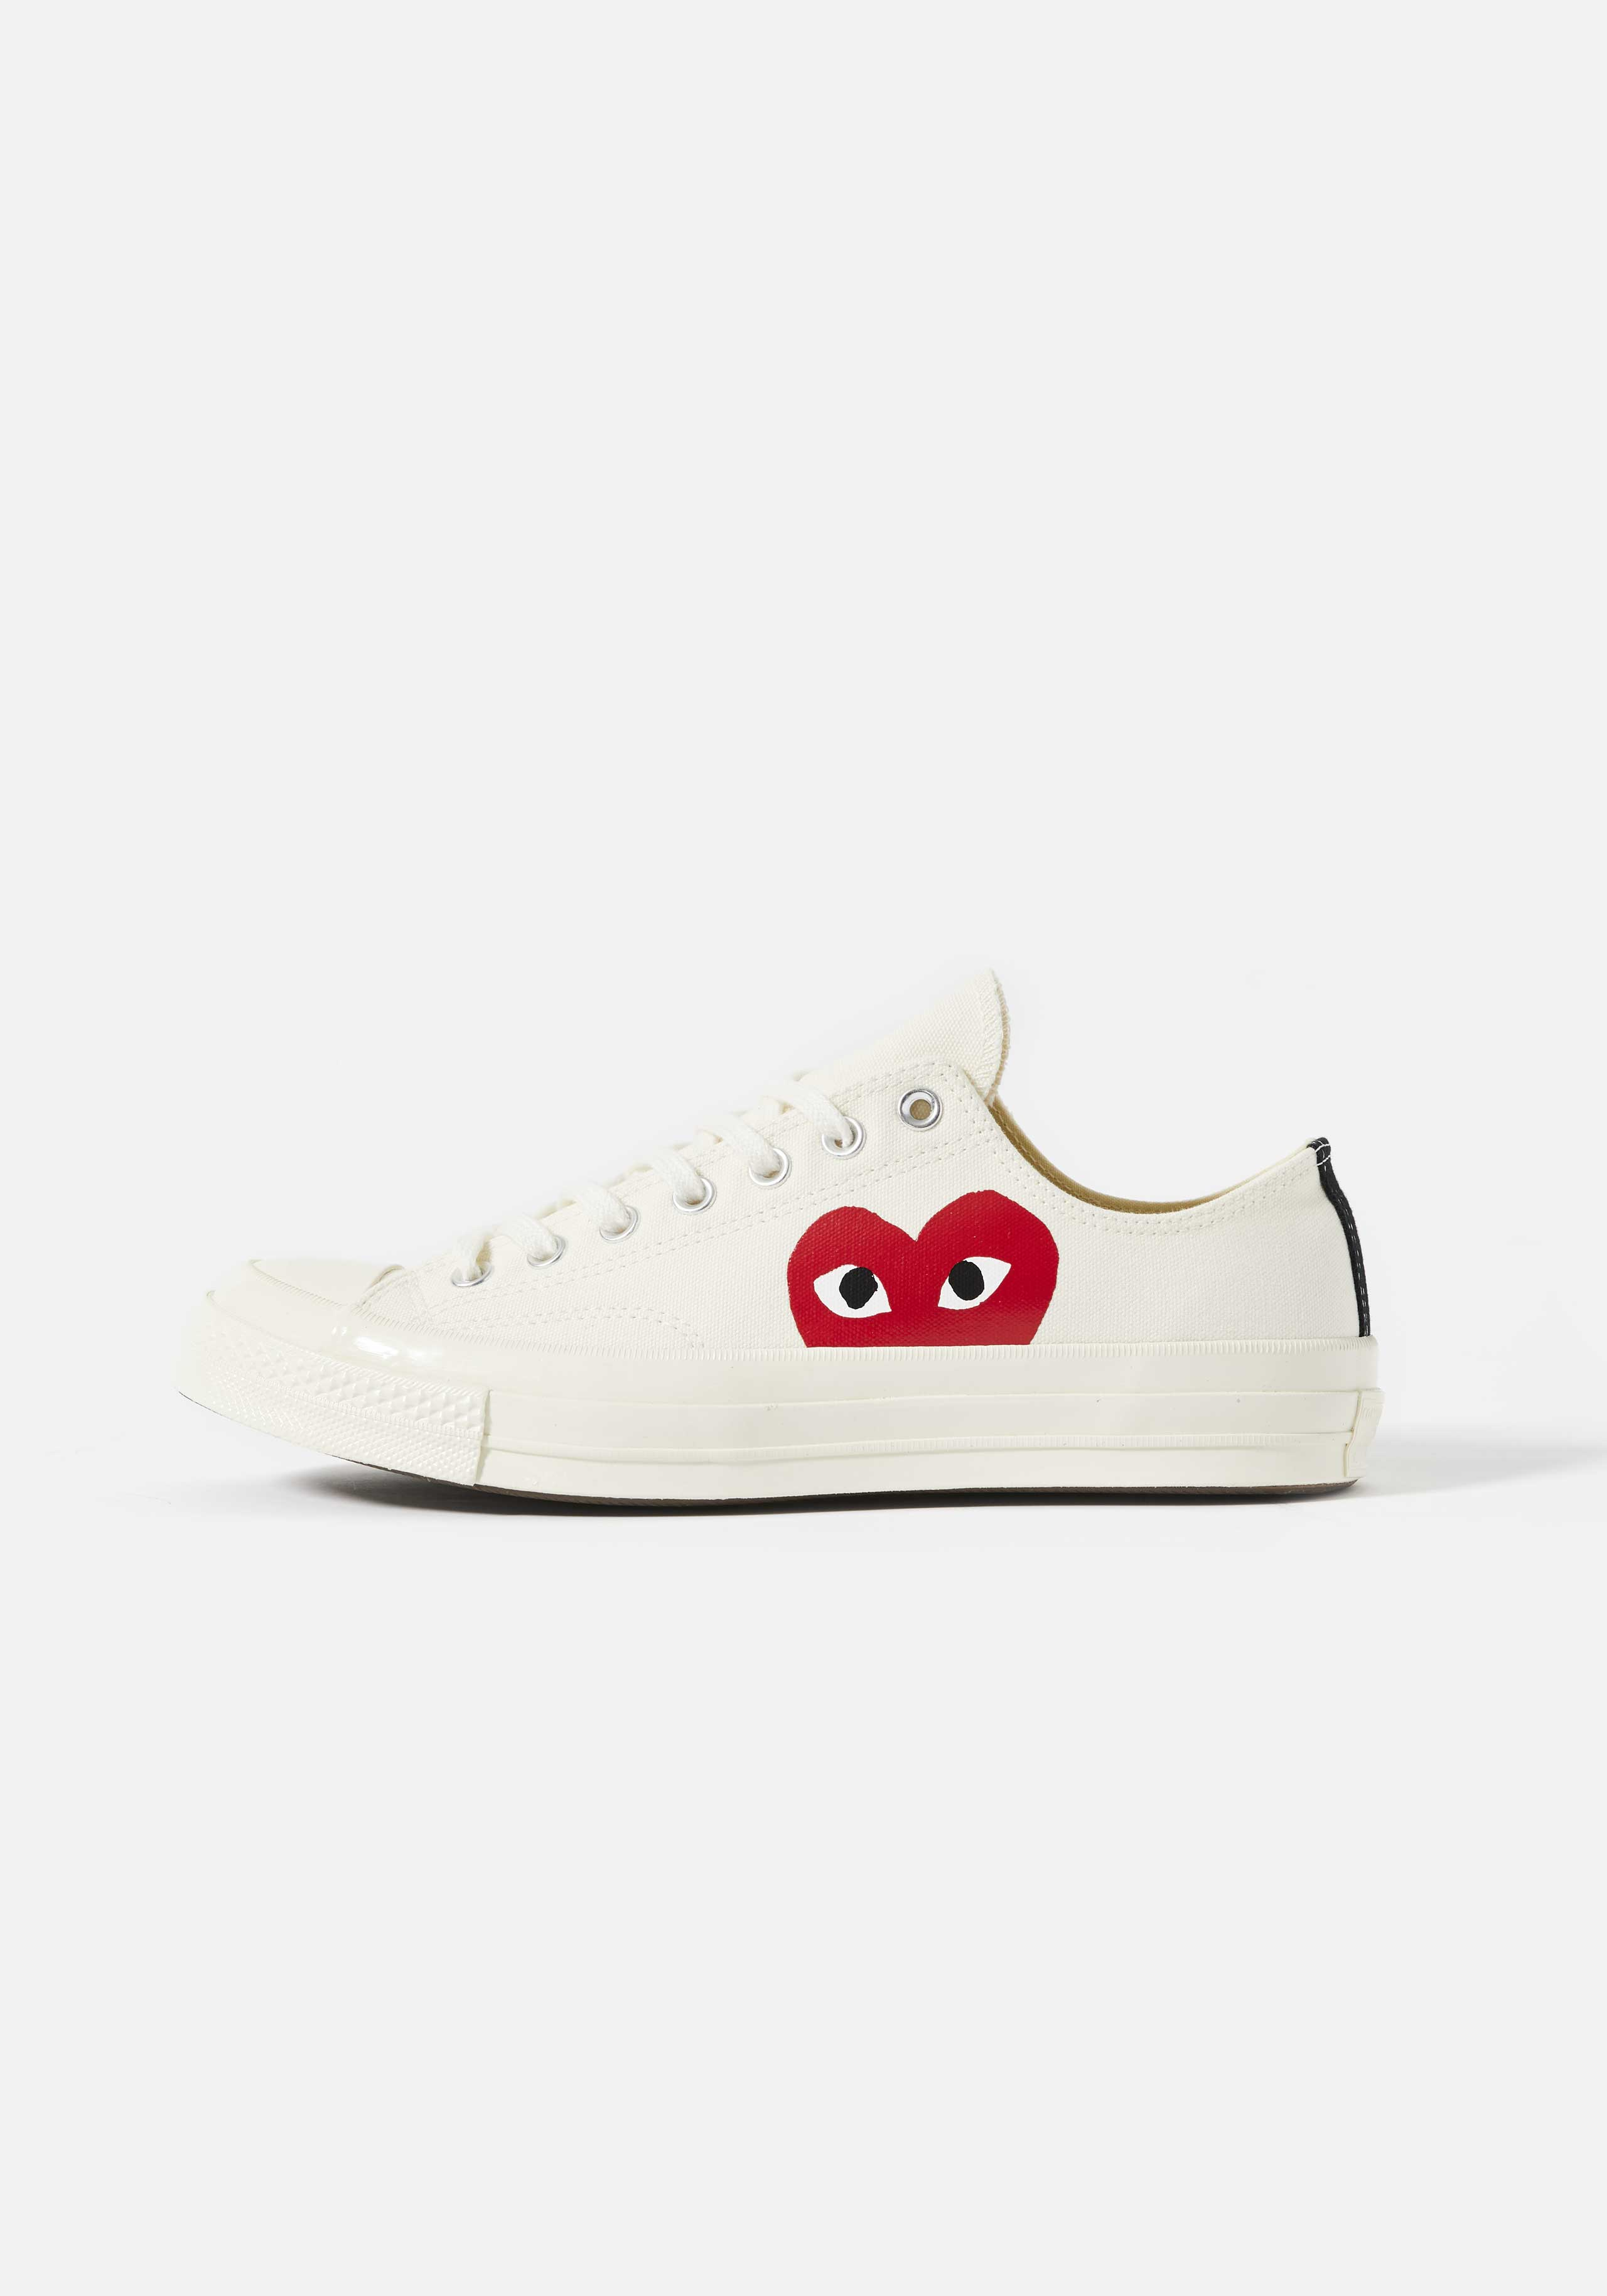 cdg play converse red heart 70s low 1